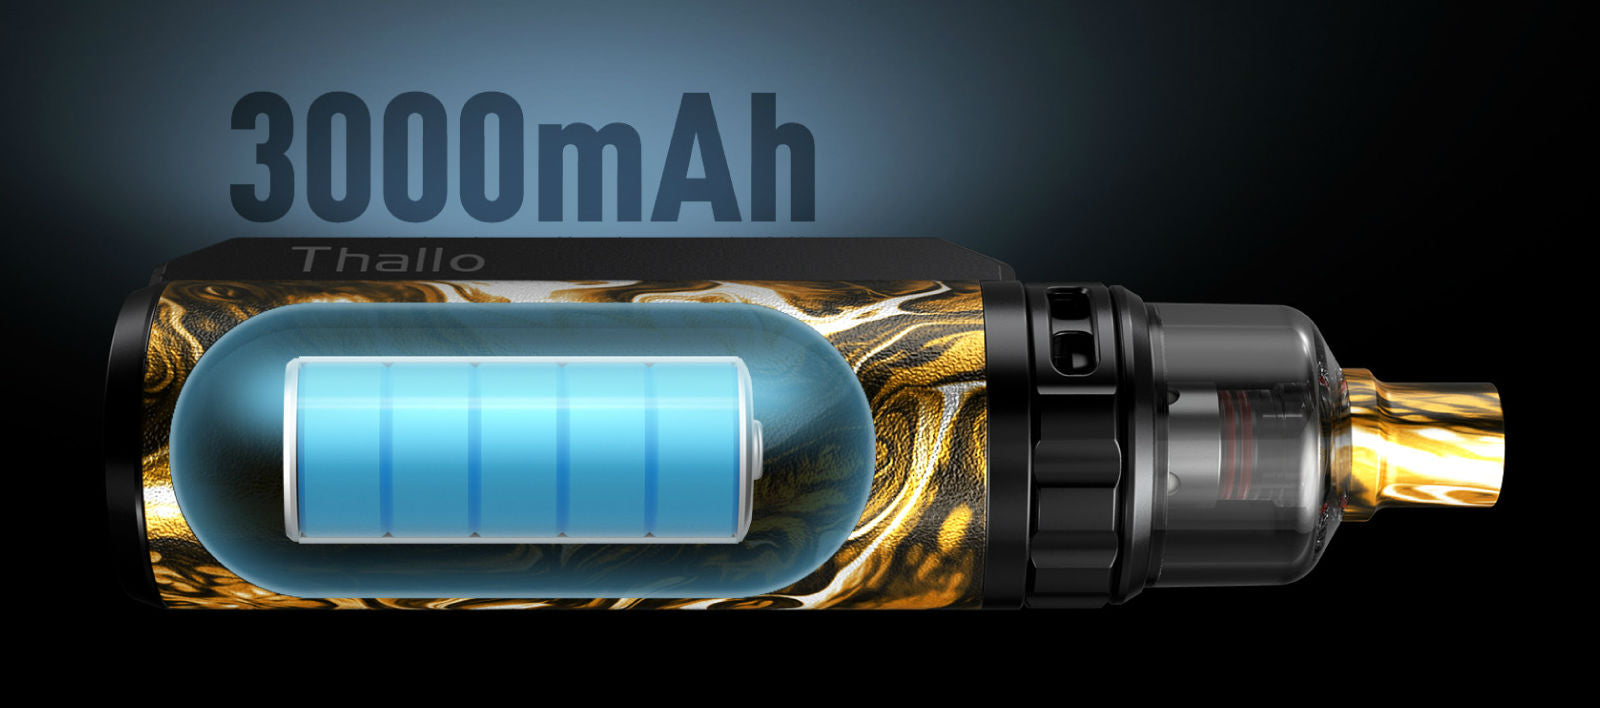 A huge 3000mAh battery will keep you vaping all day